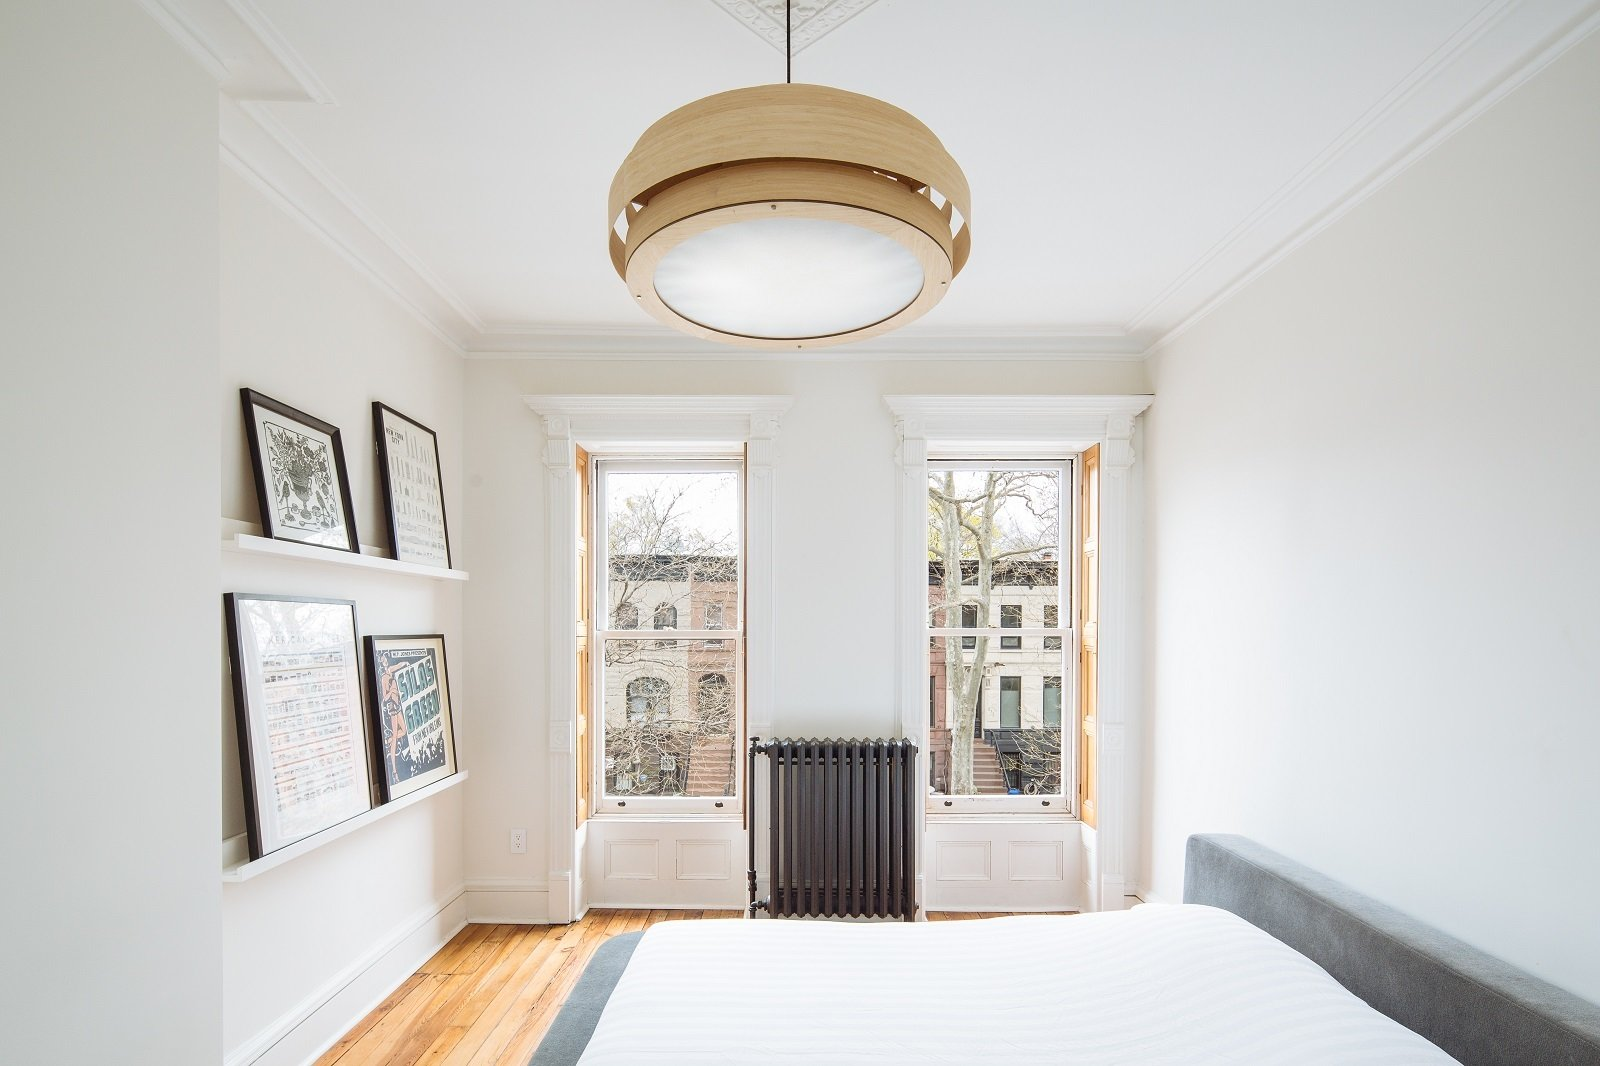 Bedroom, Pendant Lighting, Accent Lighting, Bed, and Medium Hardwood Floor Masterbedroom  Brooklyn Brownstone by Sonya Lee Architect llc